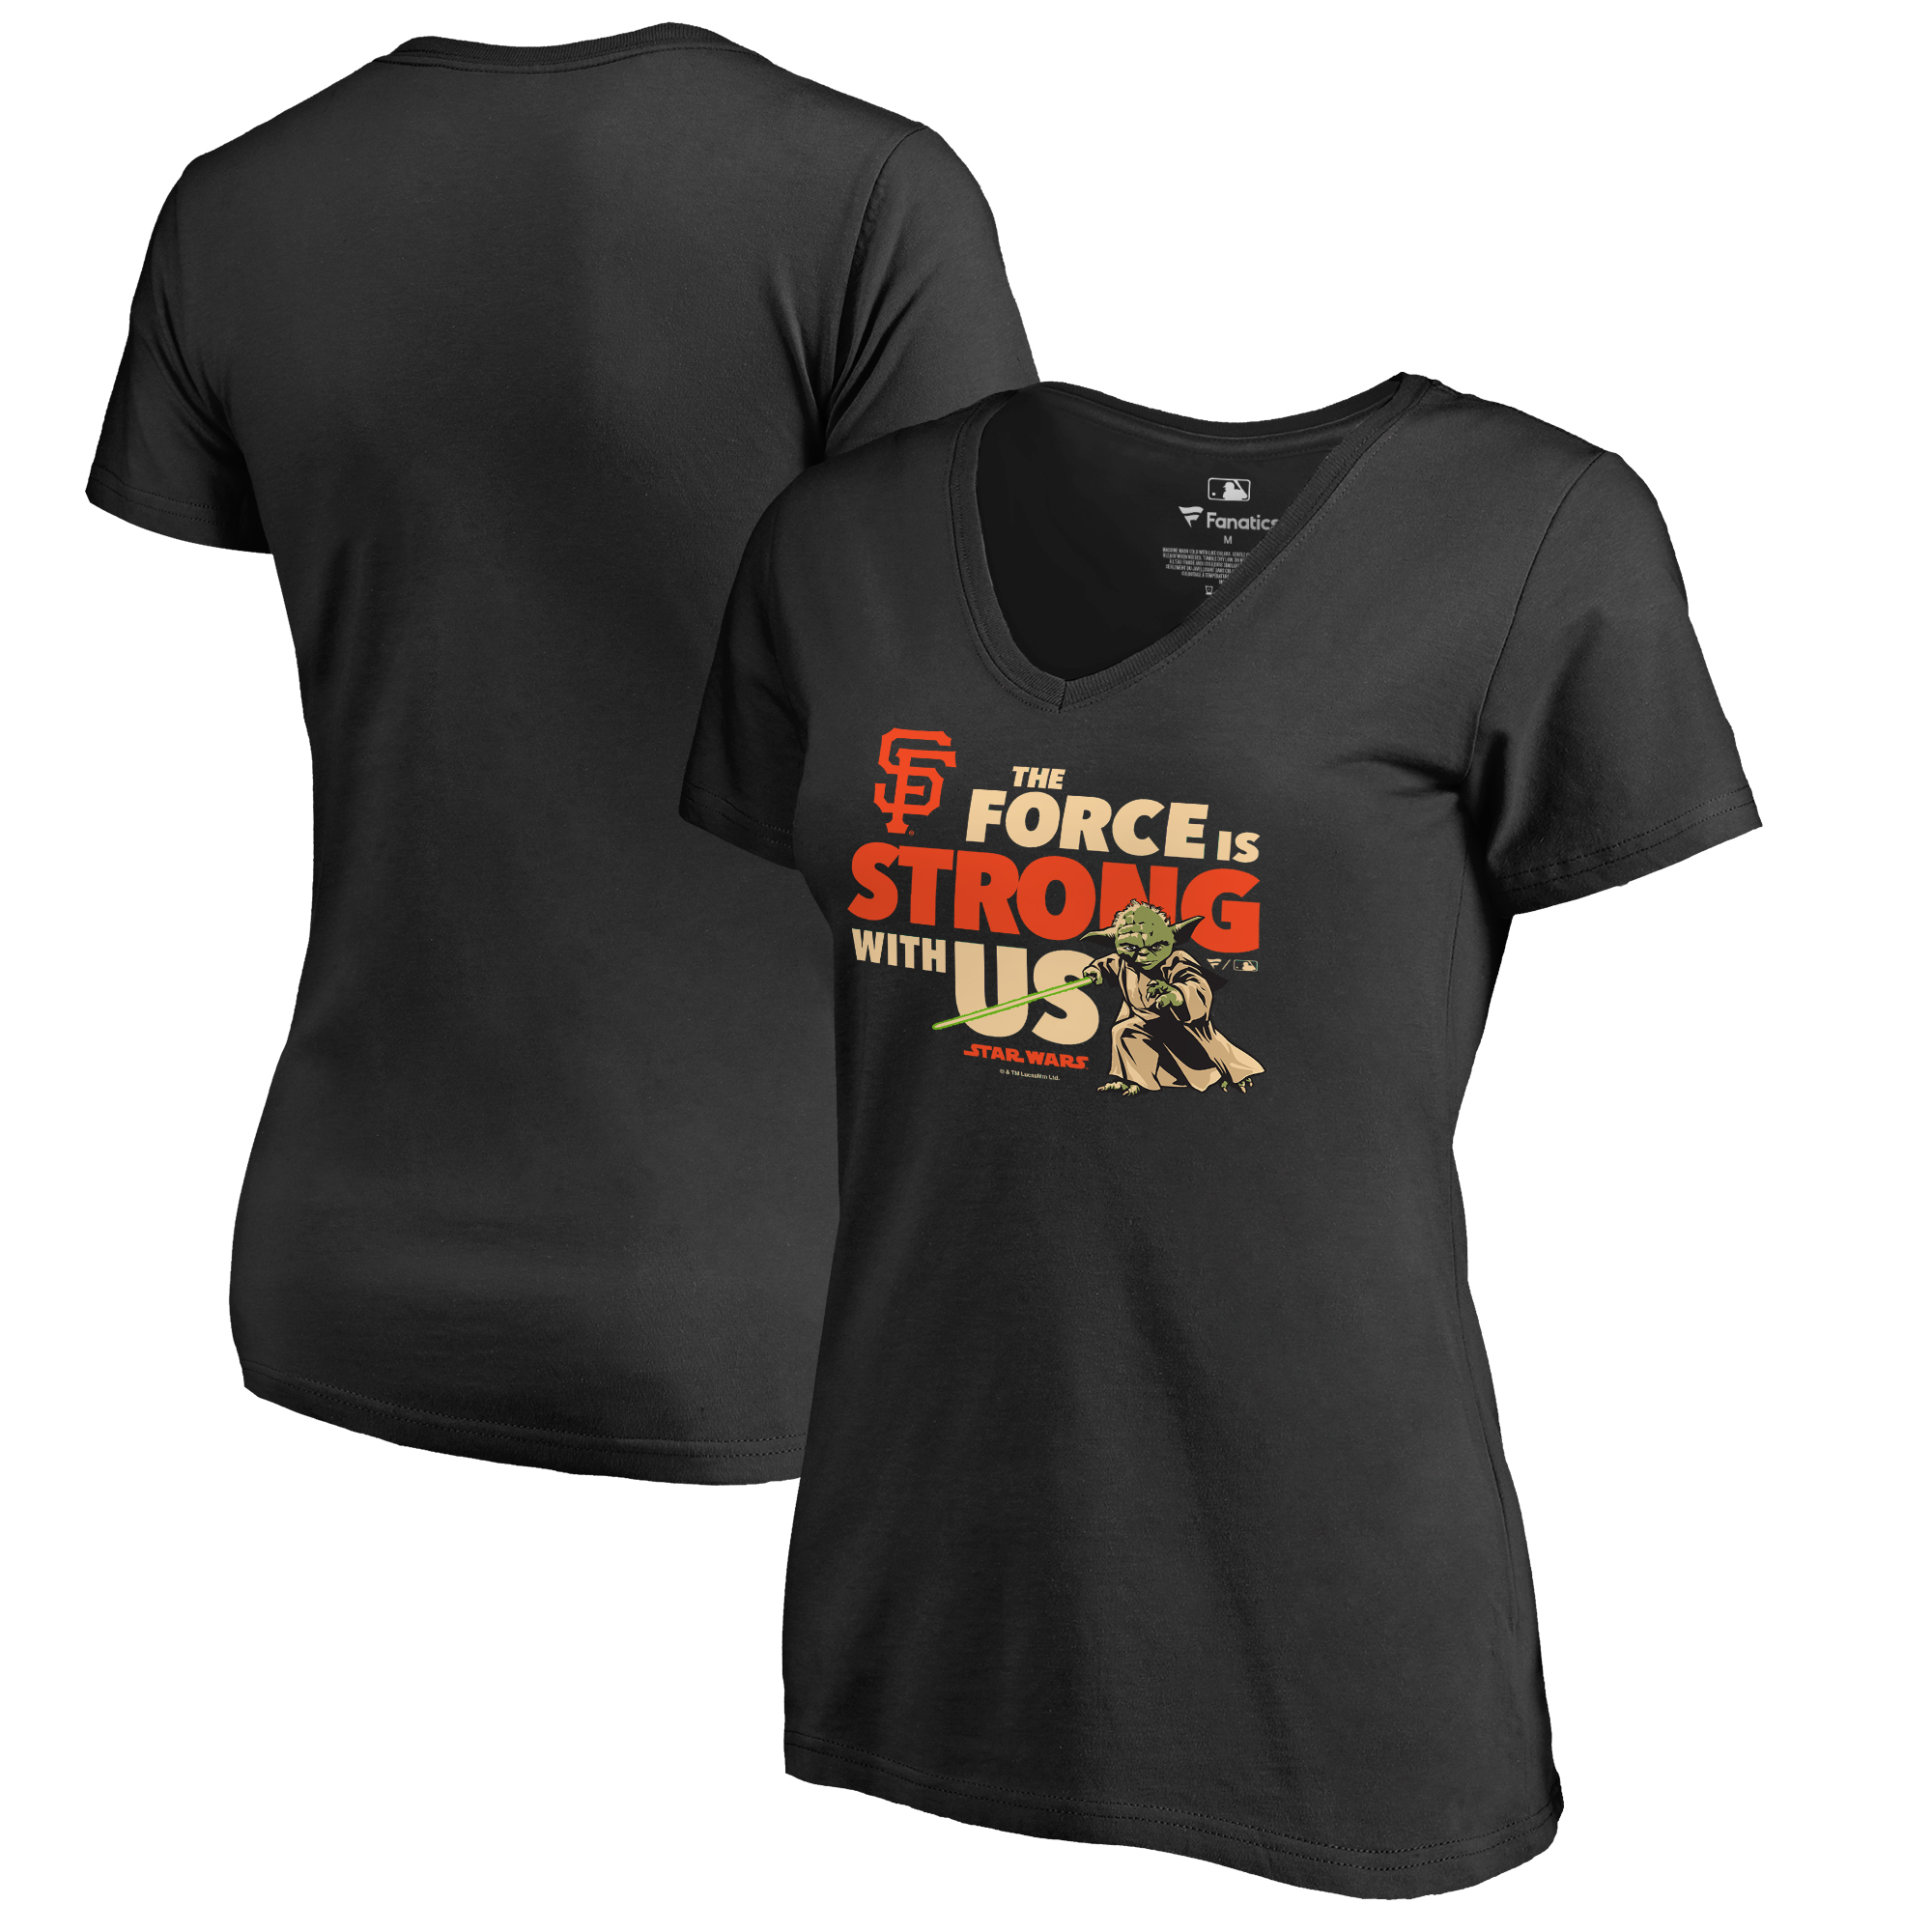 San Francisco Giants Fanatics Branded Women's Star Wars Jedi Strong V-Neck T-Shirt - Black